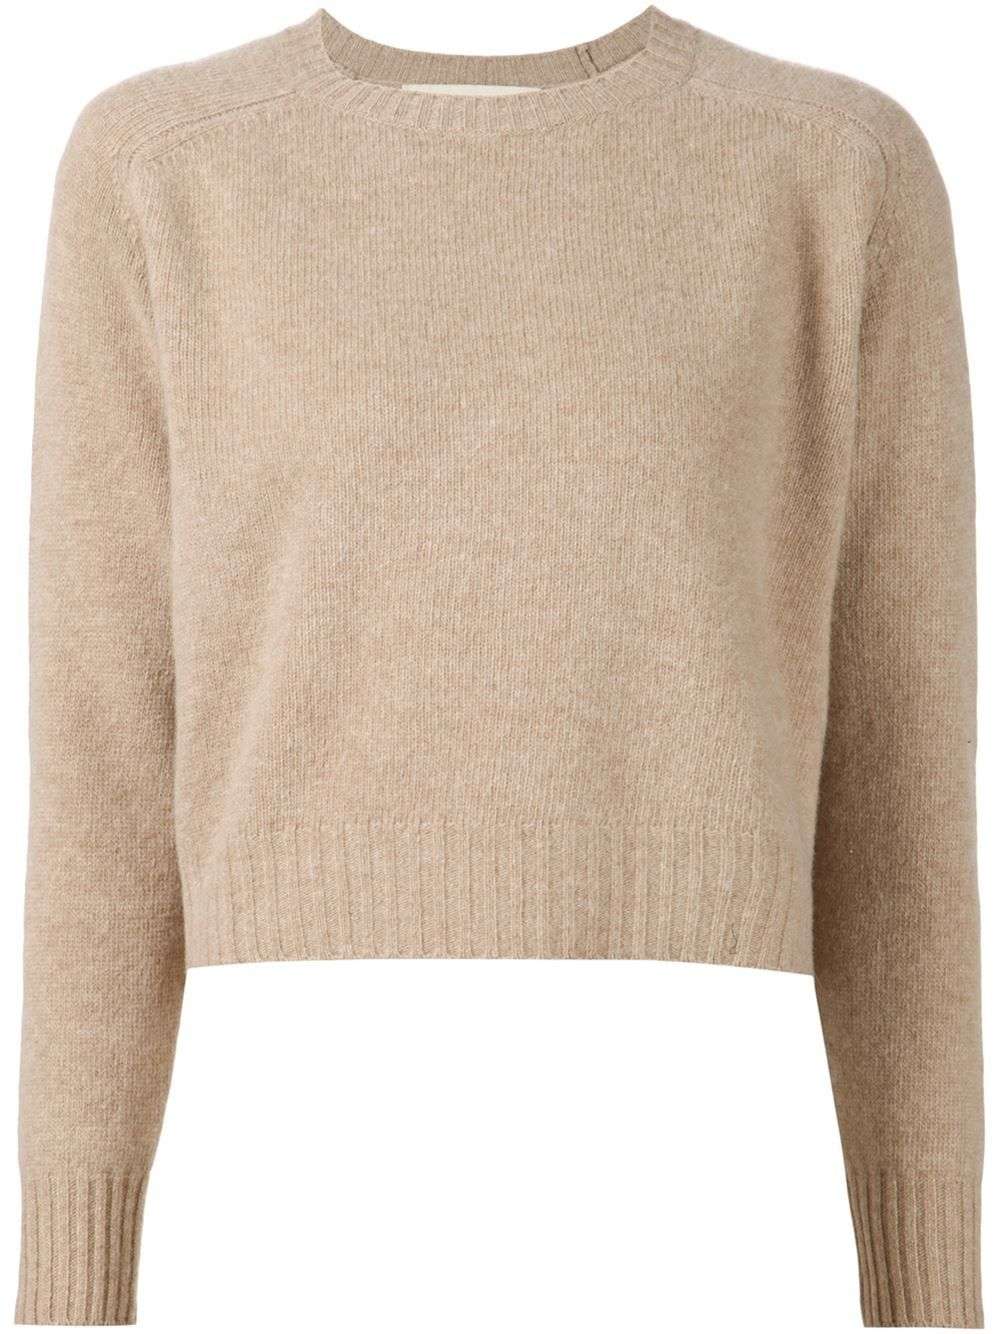 0eae621f6ff Marni Cropped Sweater - Capitol - Farfetch.com | Lovely pastels ...